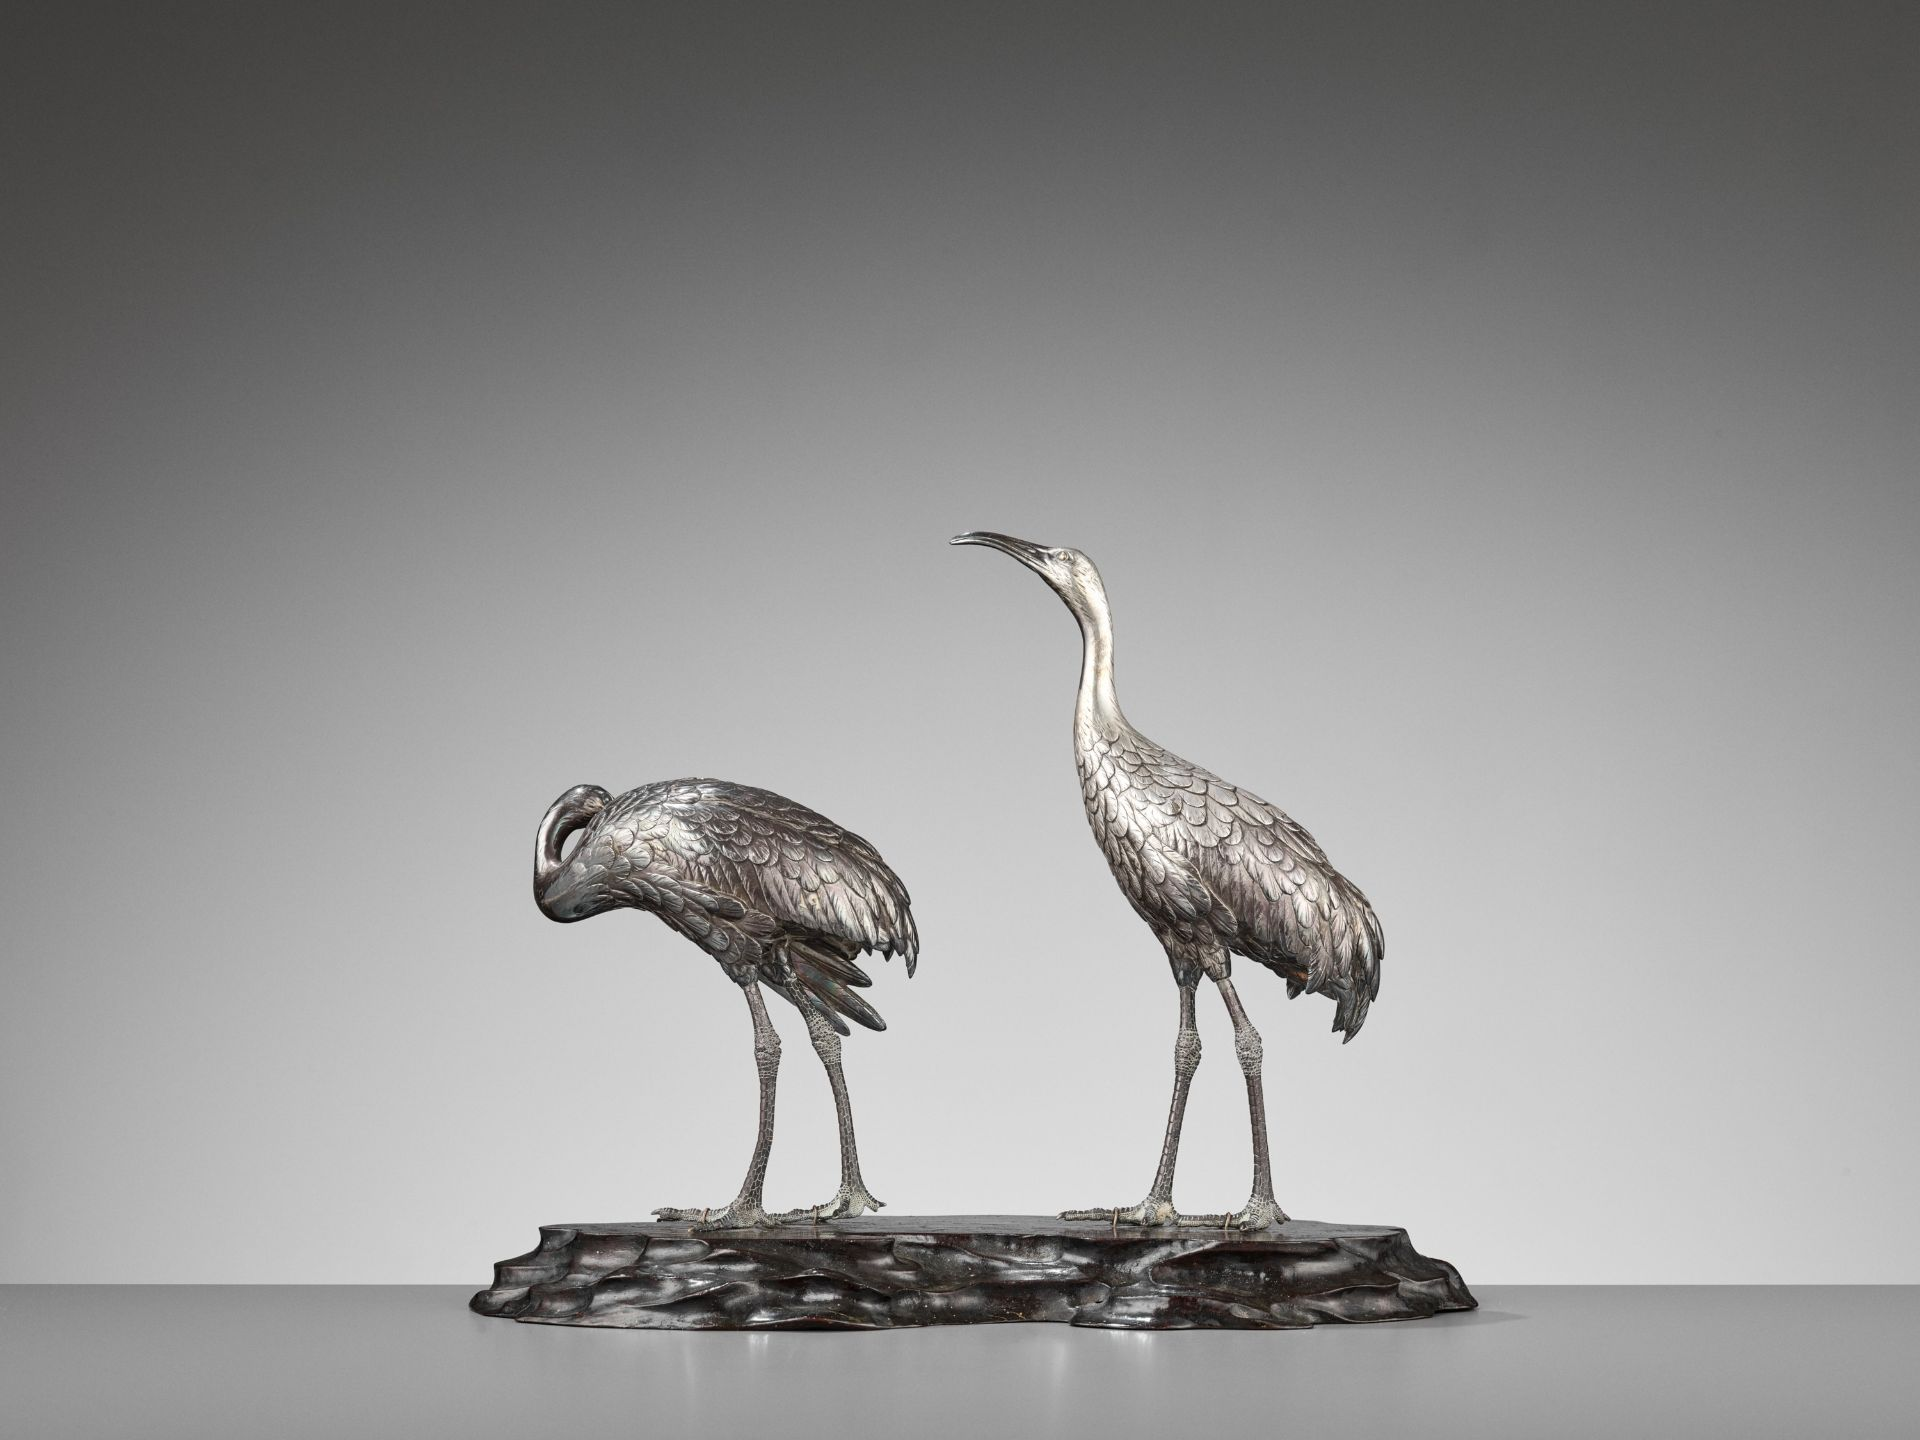 MUSASHIYA: A FINE AND RARE SILVERED OKIMONO OF A PAIR OF CRANES - Image 7 of 11